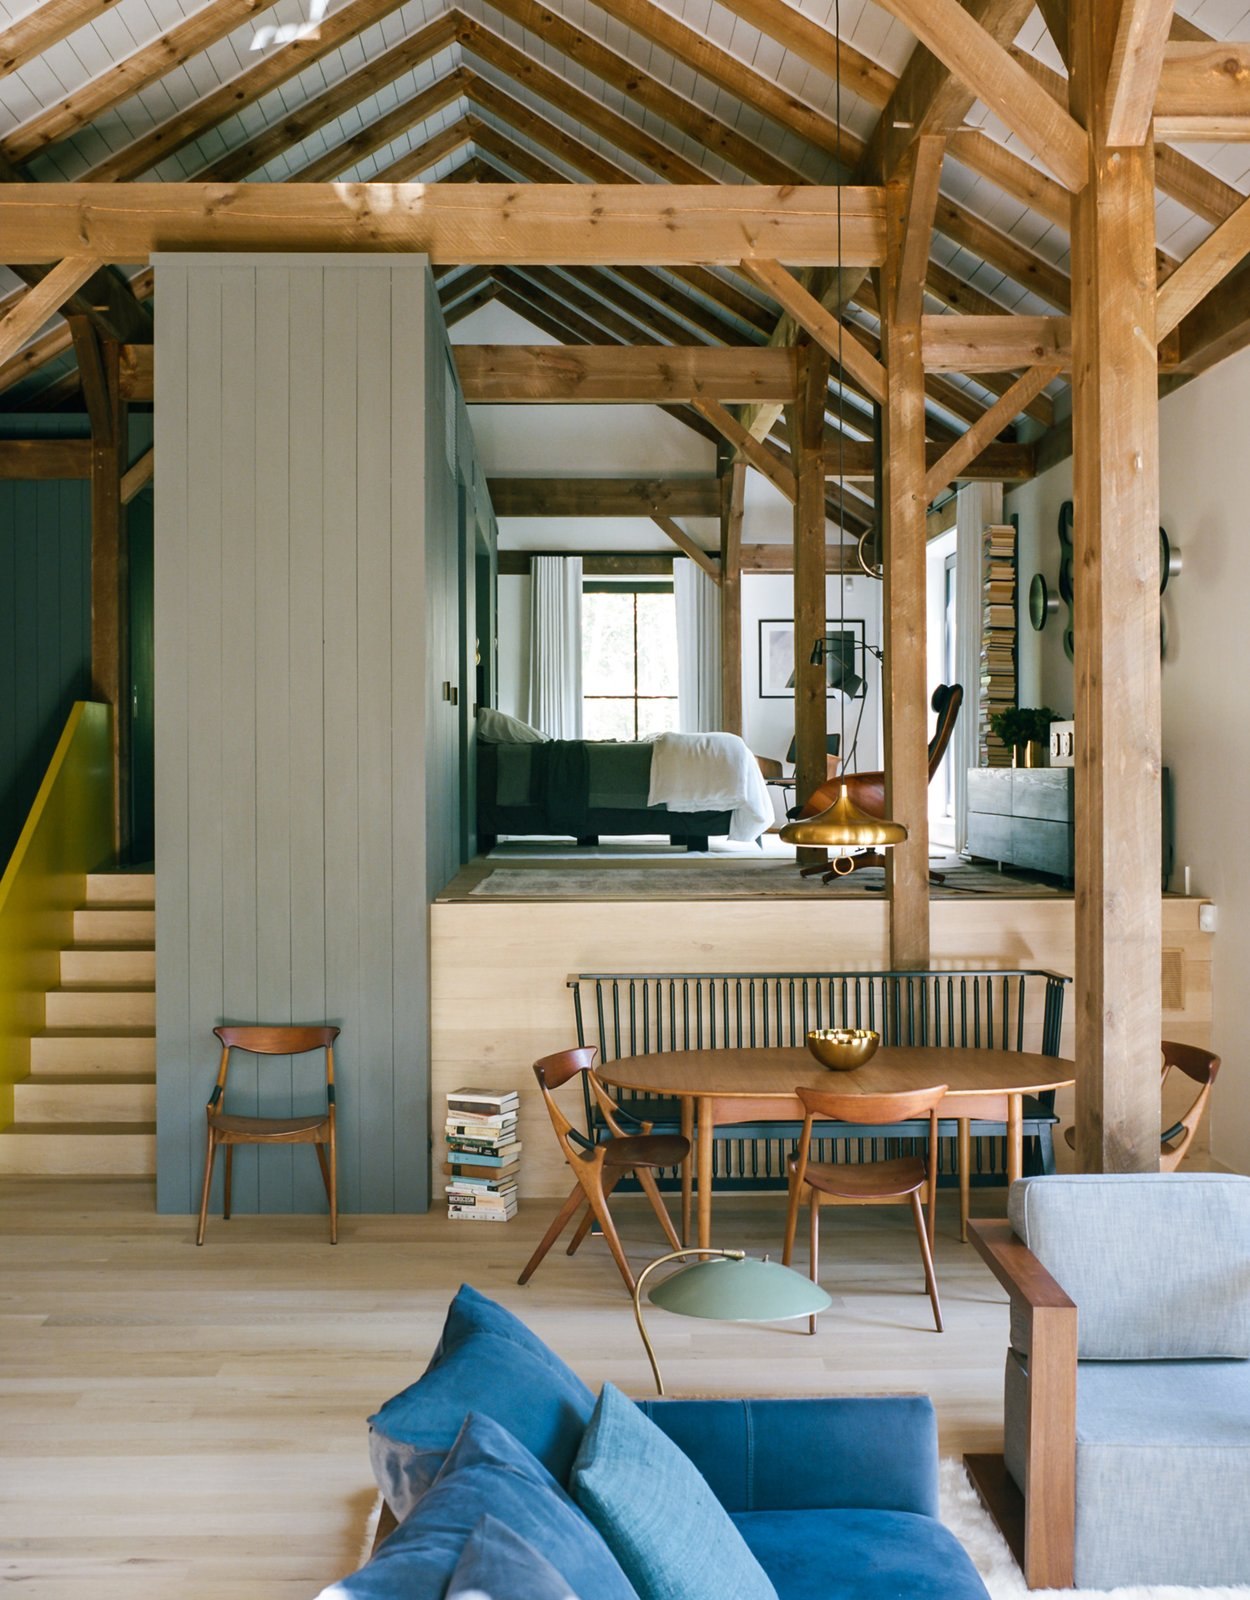 """The open living-and-bedroom area of Ian Hague's rural retreat can be divided by a wall that rises from within the master-suite platform. Interior designer Elaine Santos blended her client's collection of vintage furniture with no-fuss pieces like a Shaker-style bench by Ilse Crawford for De La Espada. Tagged: Living Room, Chair, Sofa, Table, and Light Hardwood Floor.  Colorful Intentions by Meg Dwyer from A Passive House and """"Sauna Tower"""" Join a 19th-Century Barn in the Hudson Valley"""